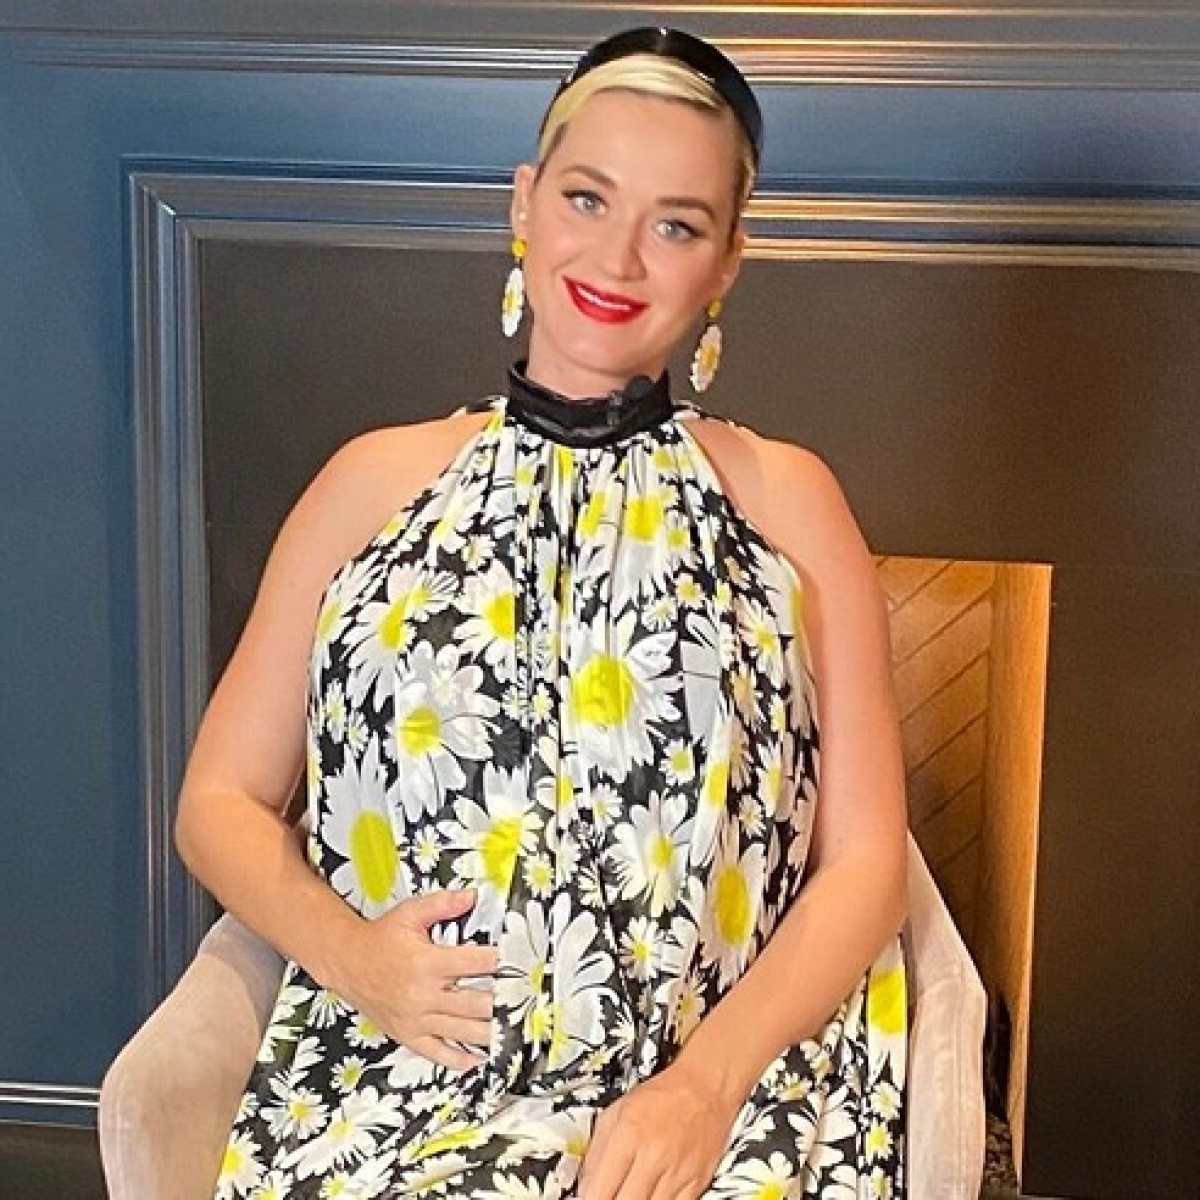 Katy Perry says she will stay at home even after quarantine ends